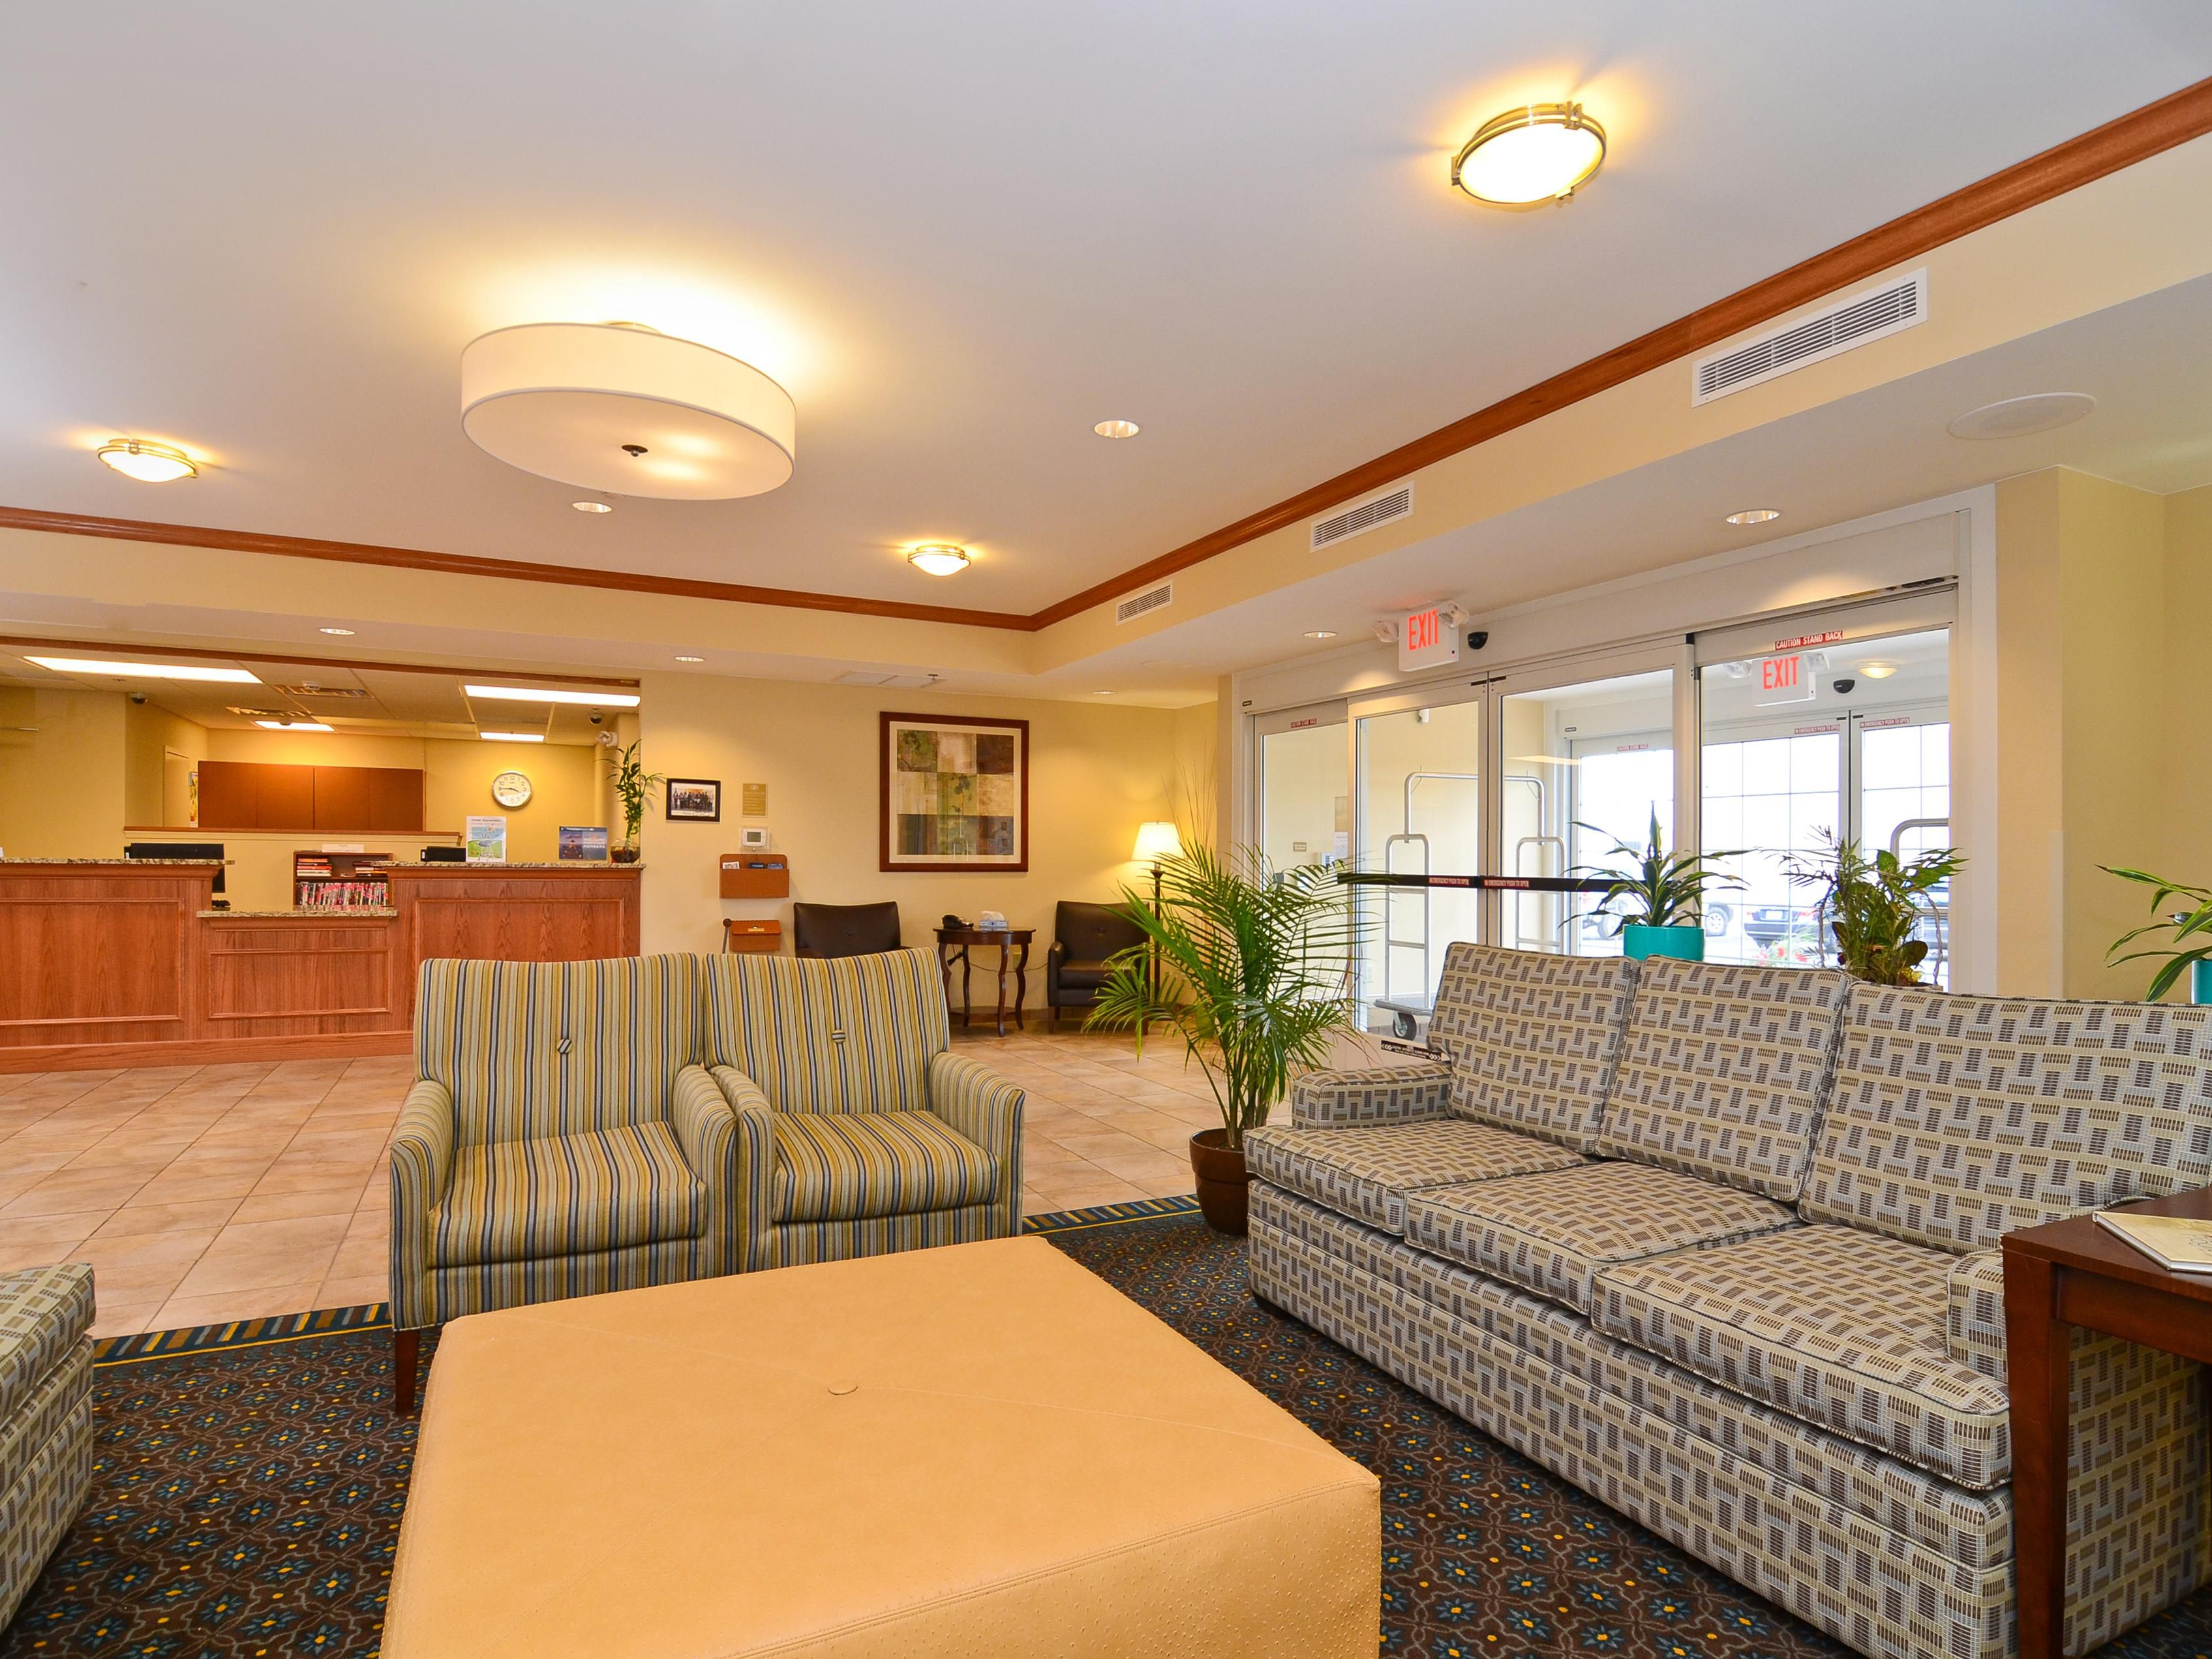 Chambersburg Hotels Candlewood Suites Extended Stay Hotel In Pennsylvania